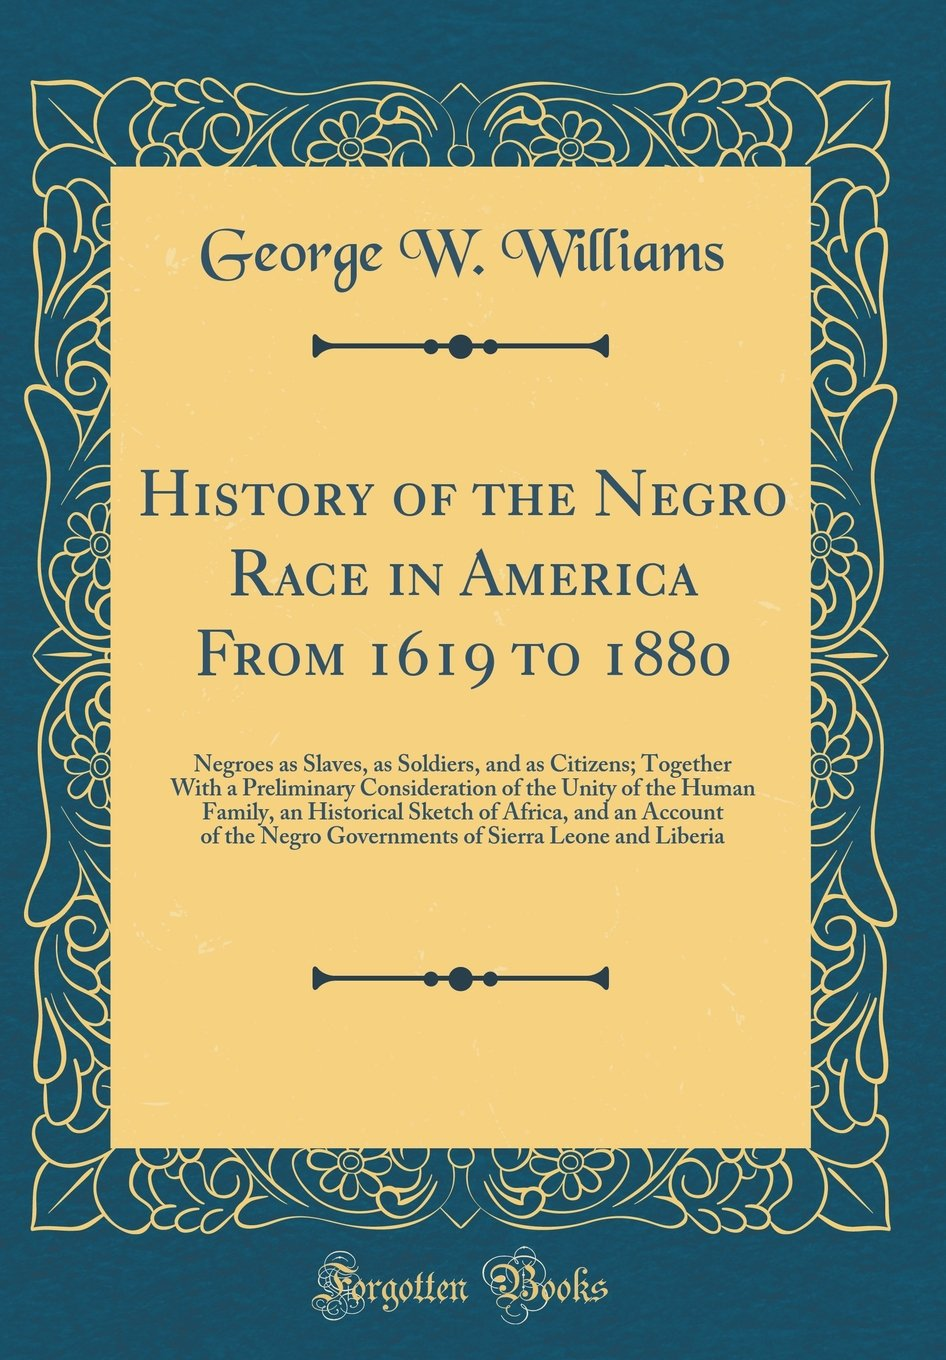 History of the Negro Race in America from 1619 to 1880: Negroes as Slaves, as Soldiers, and as Citizens; Together with a Preliminary Consideration of ... and an Account of the Negro Governments of pdf